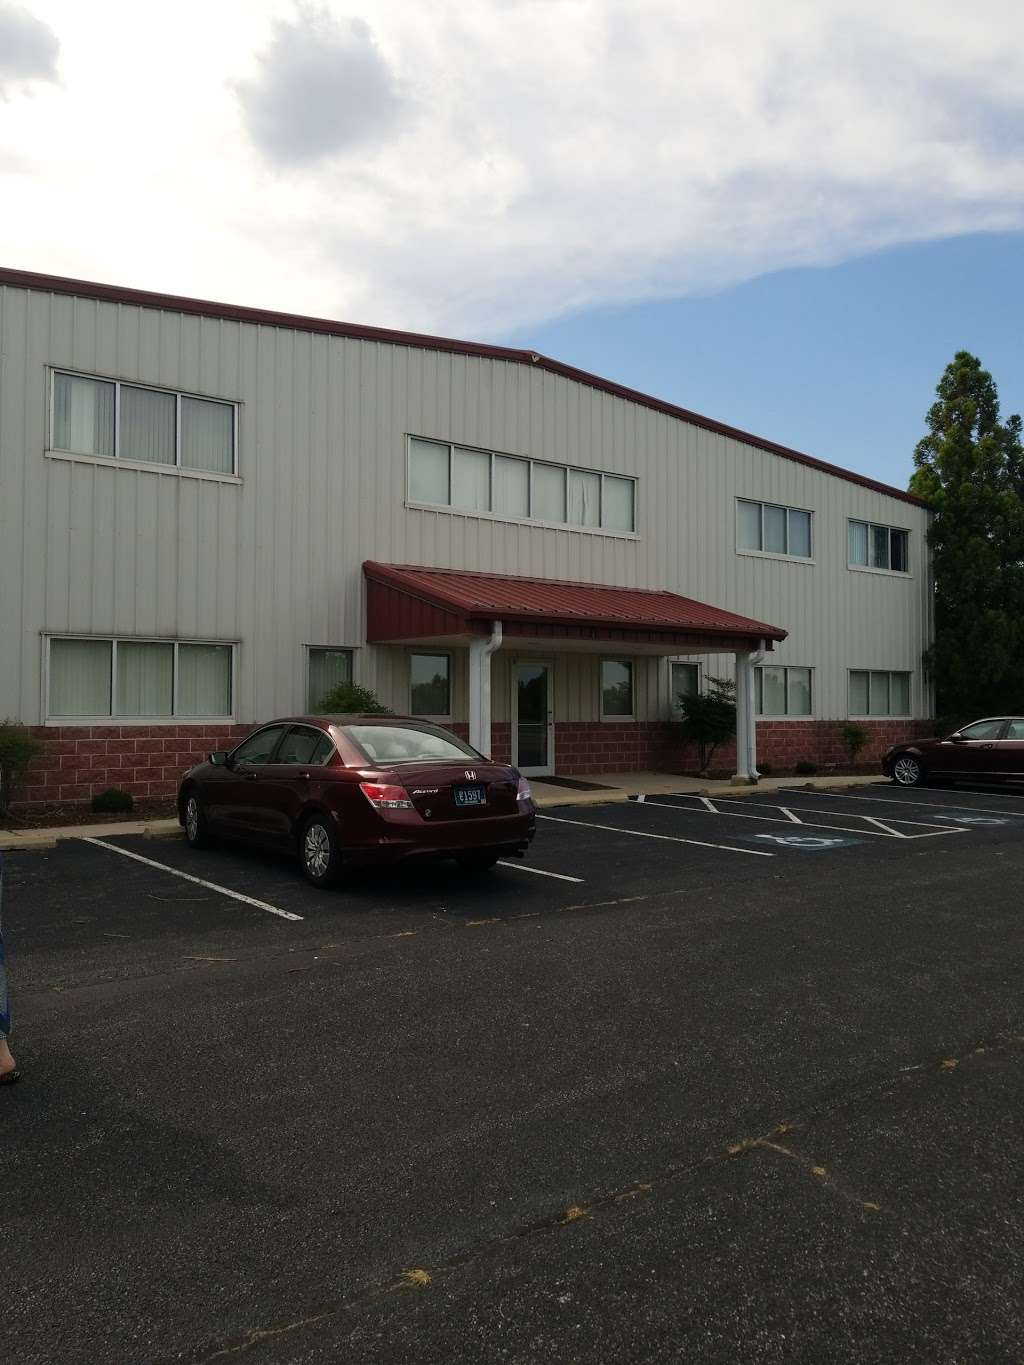 Mid Atlantic Packaging Co - store    Photo 2 of 2   Address: 14 Starlifter Ave, Dover, DE 19901, USA   Phone: (800) 284-1332